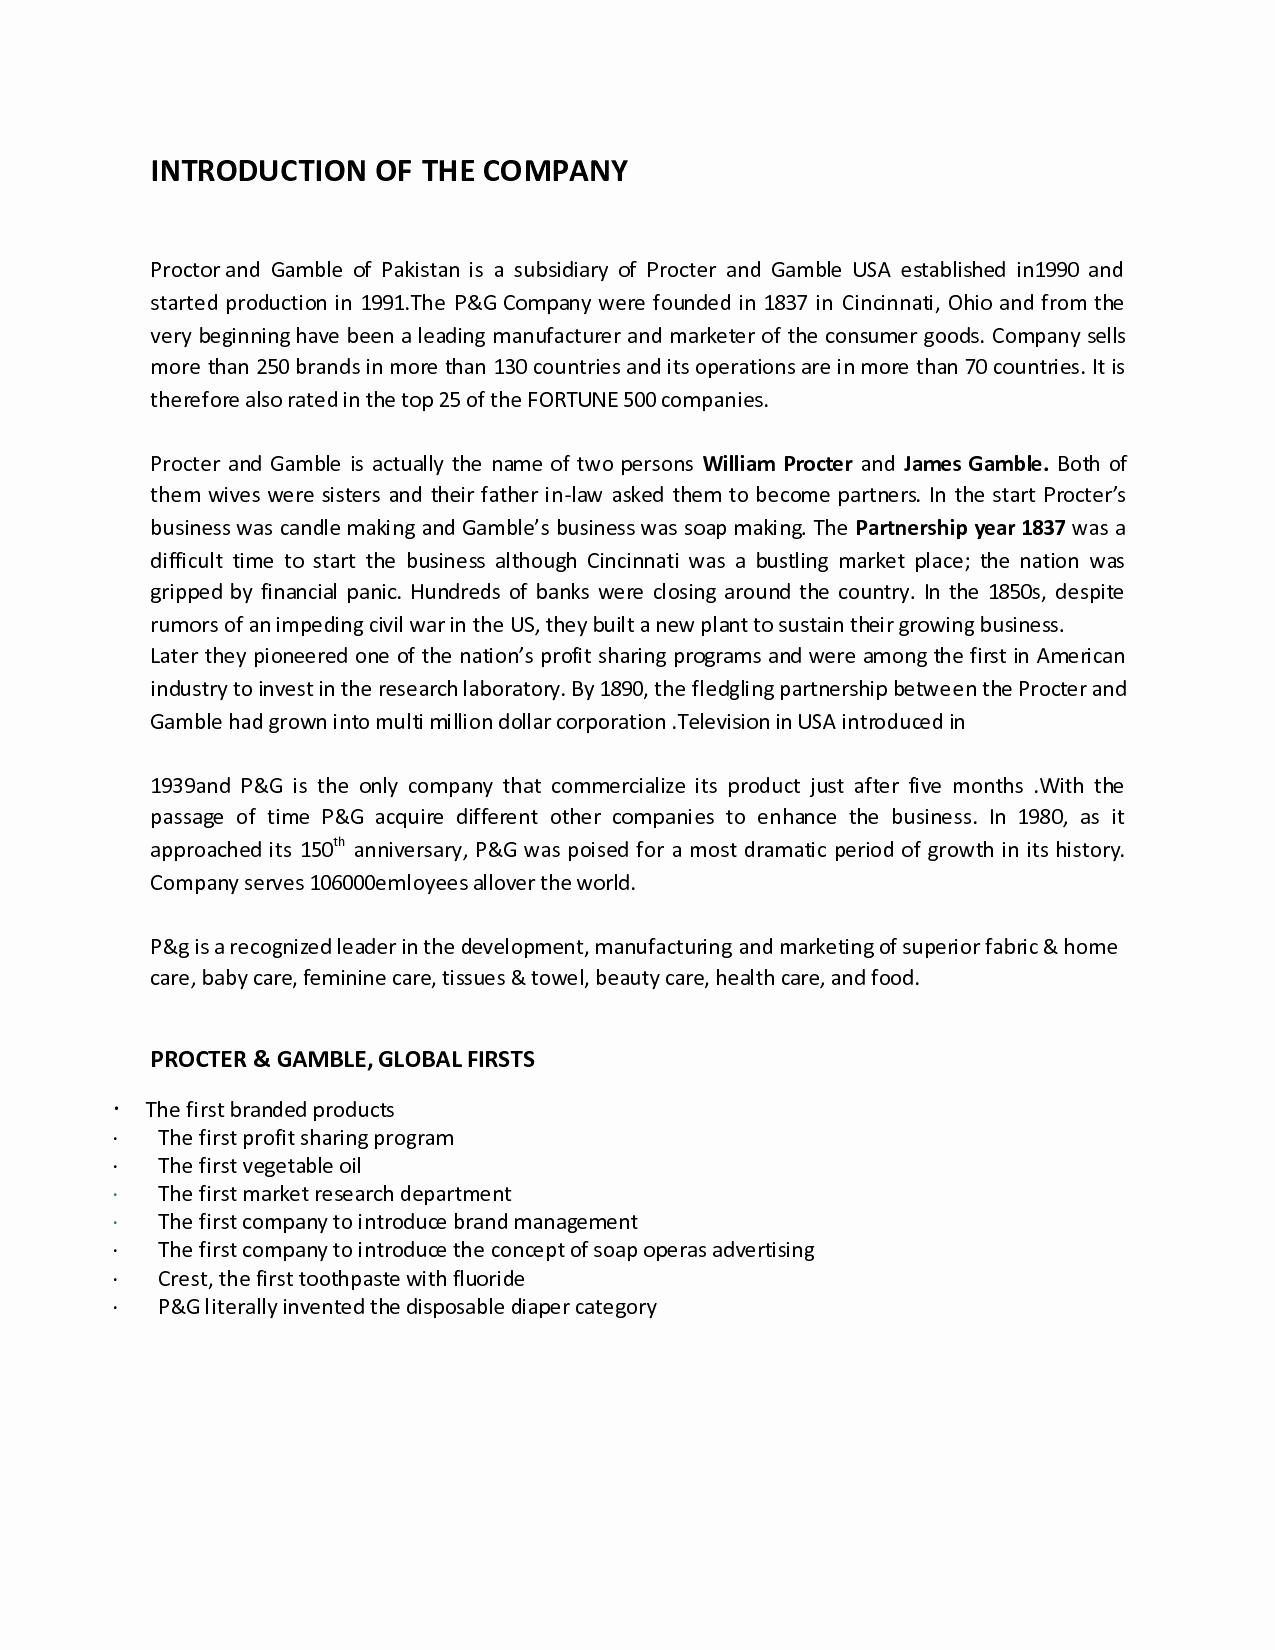 Impressive Cover Letter Template - Excellent Cover Letter Examples Luxury New Sample Cover Letter